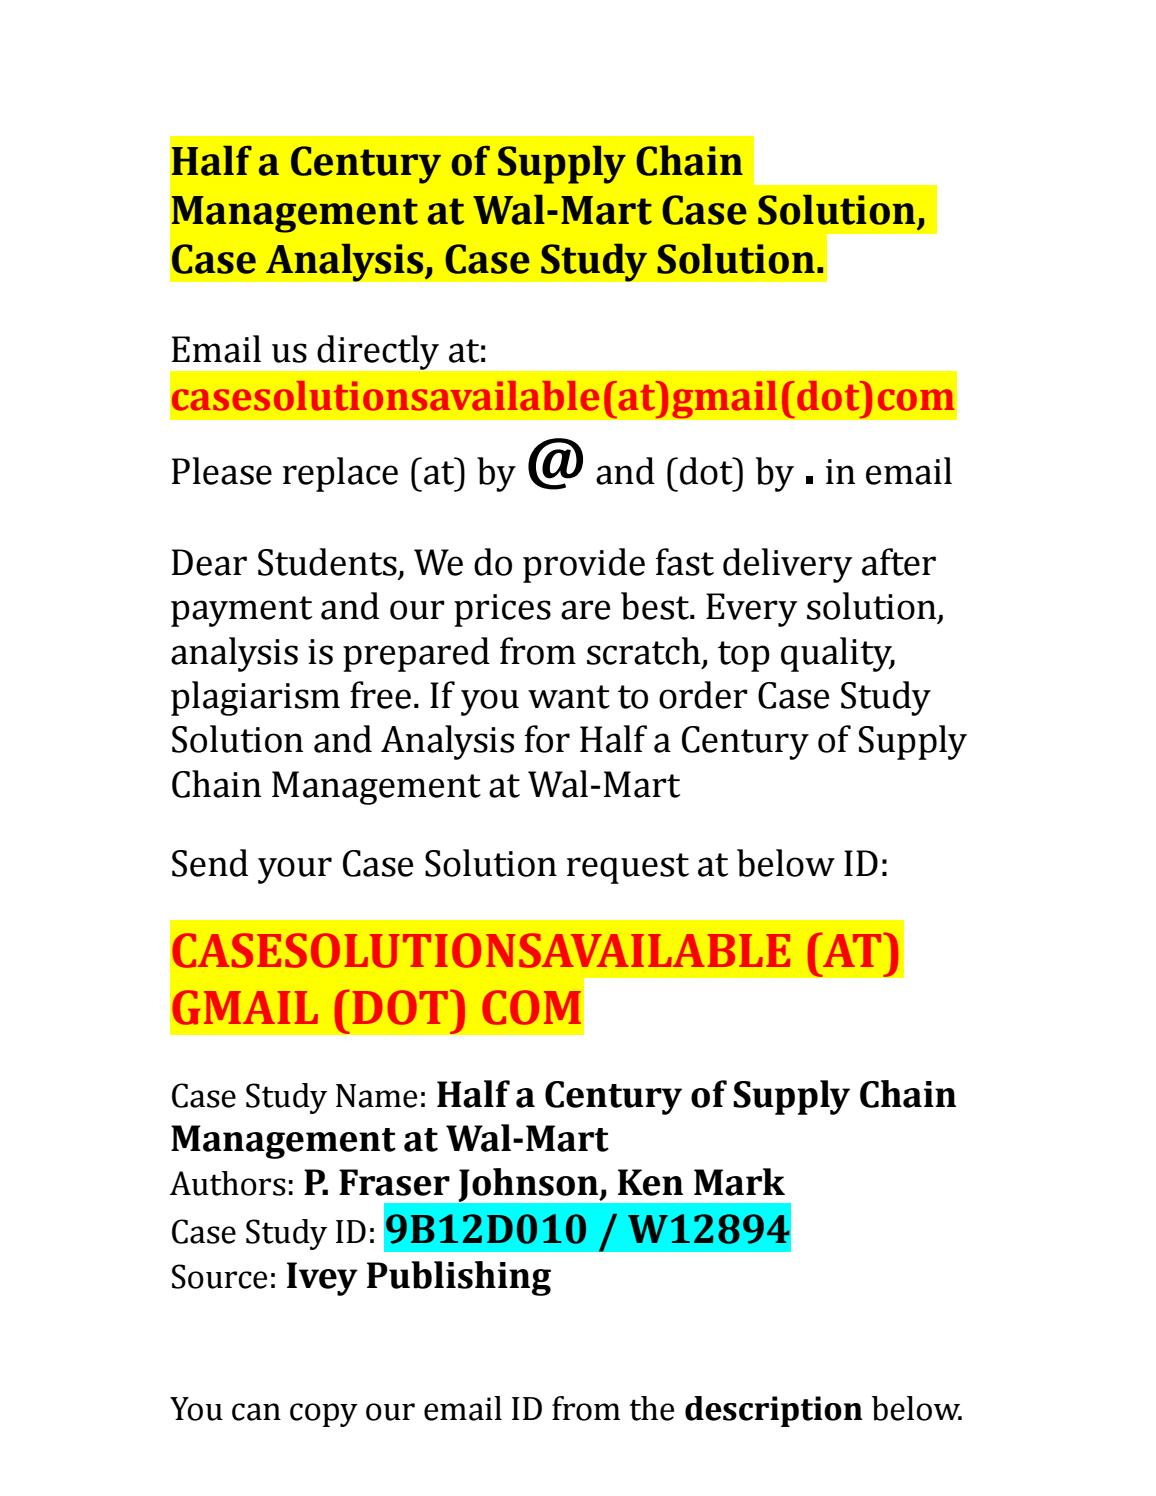 supply chain management at wal-mart case analysis